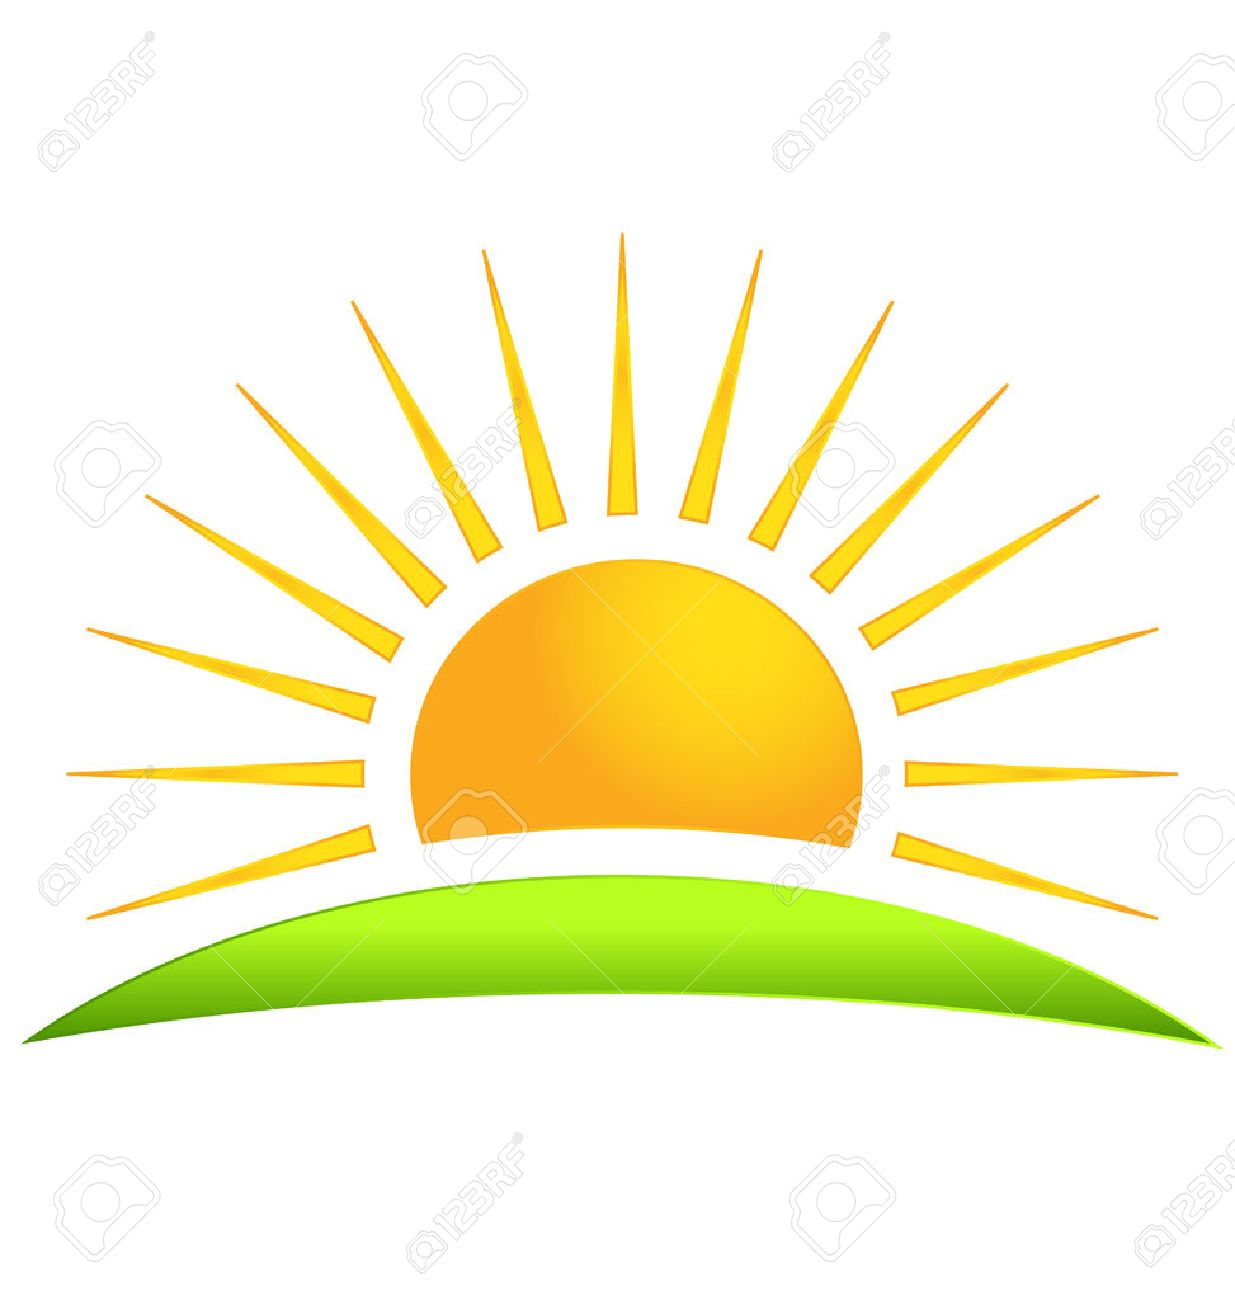 23 700 sun logo cliparts stock vector and royalty free sun logo rh 123rf com sun logo restaurant sun logos free